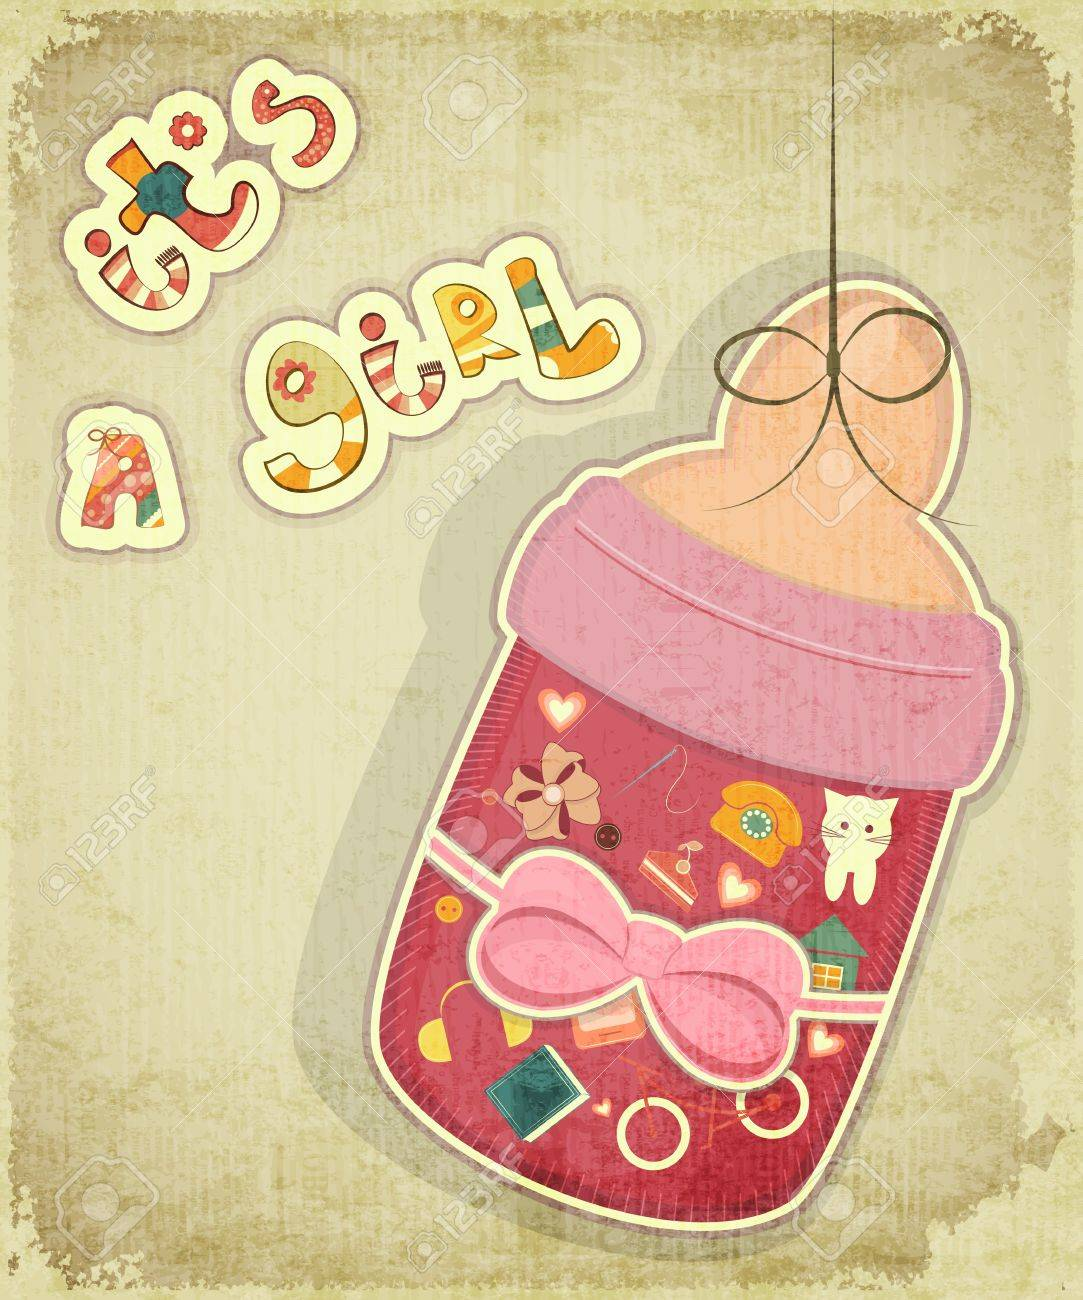 Birthday Card for Girl. Baby milk bottle for girl on vintage background. Stock Vector - 16581566